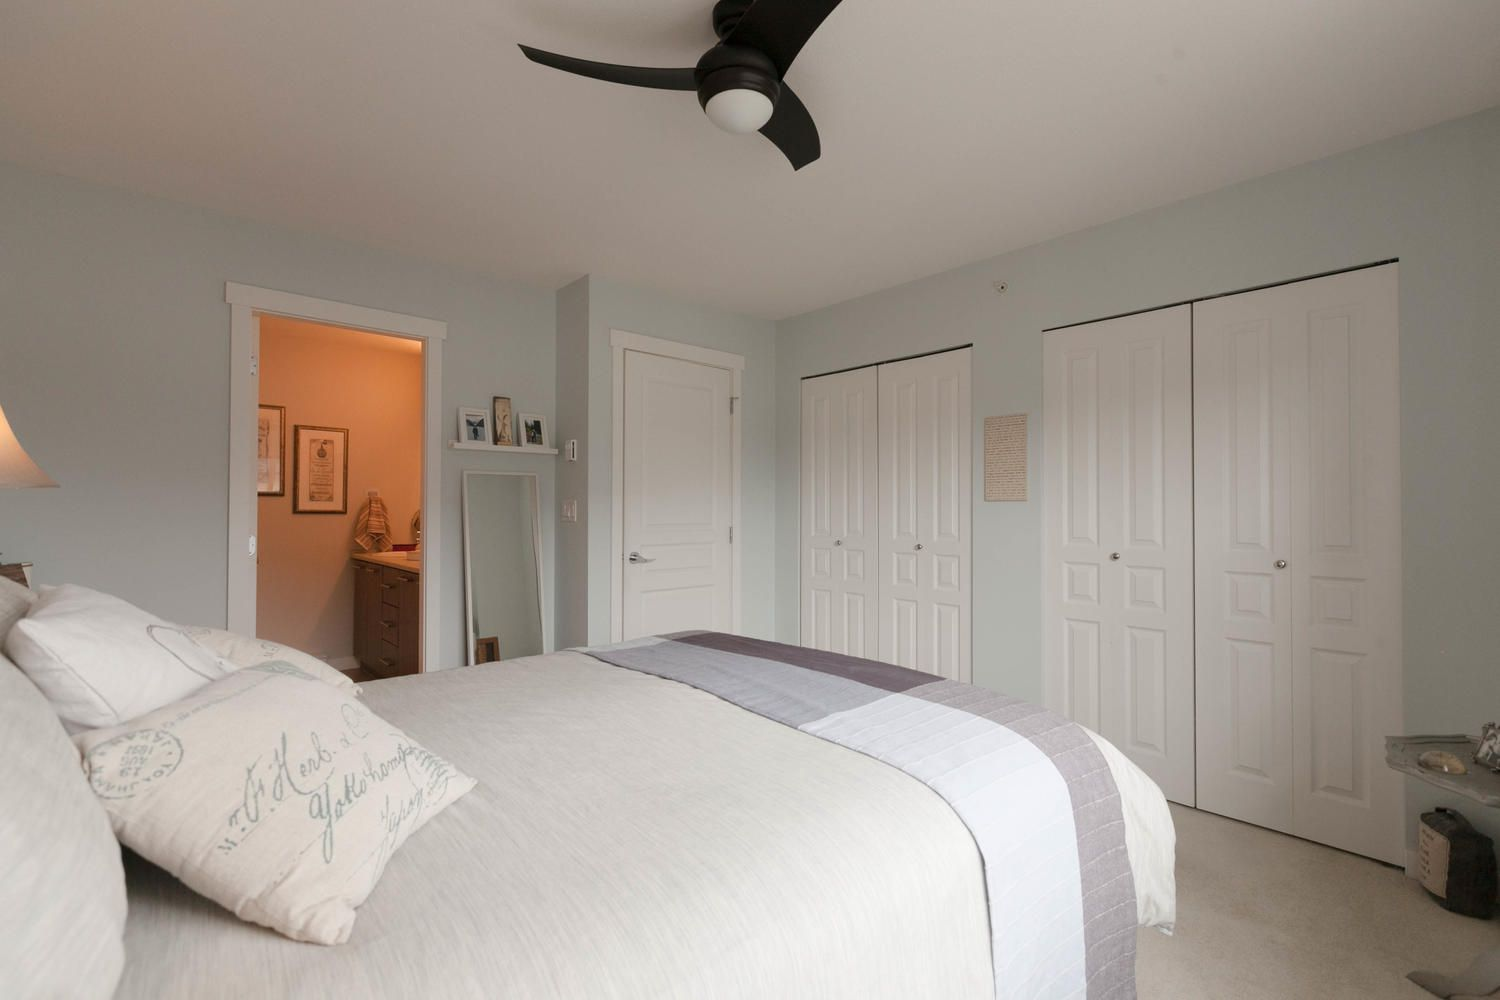 """Photo 28: Photos: 97 7938 209 Street in Langley: Willoughby Heights Townhouse for sale in """"Red Maple Park"""" : MLS®# R2260950"""